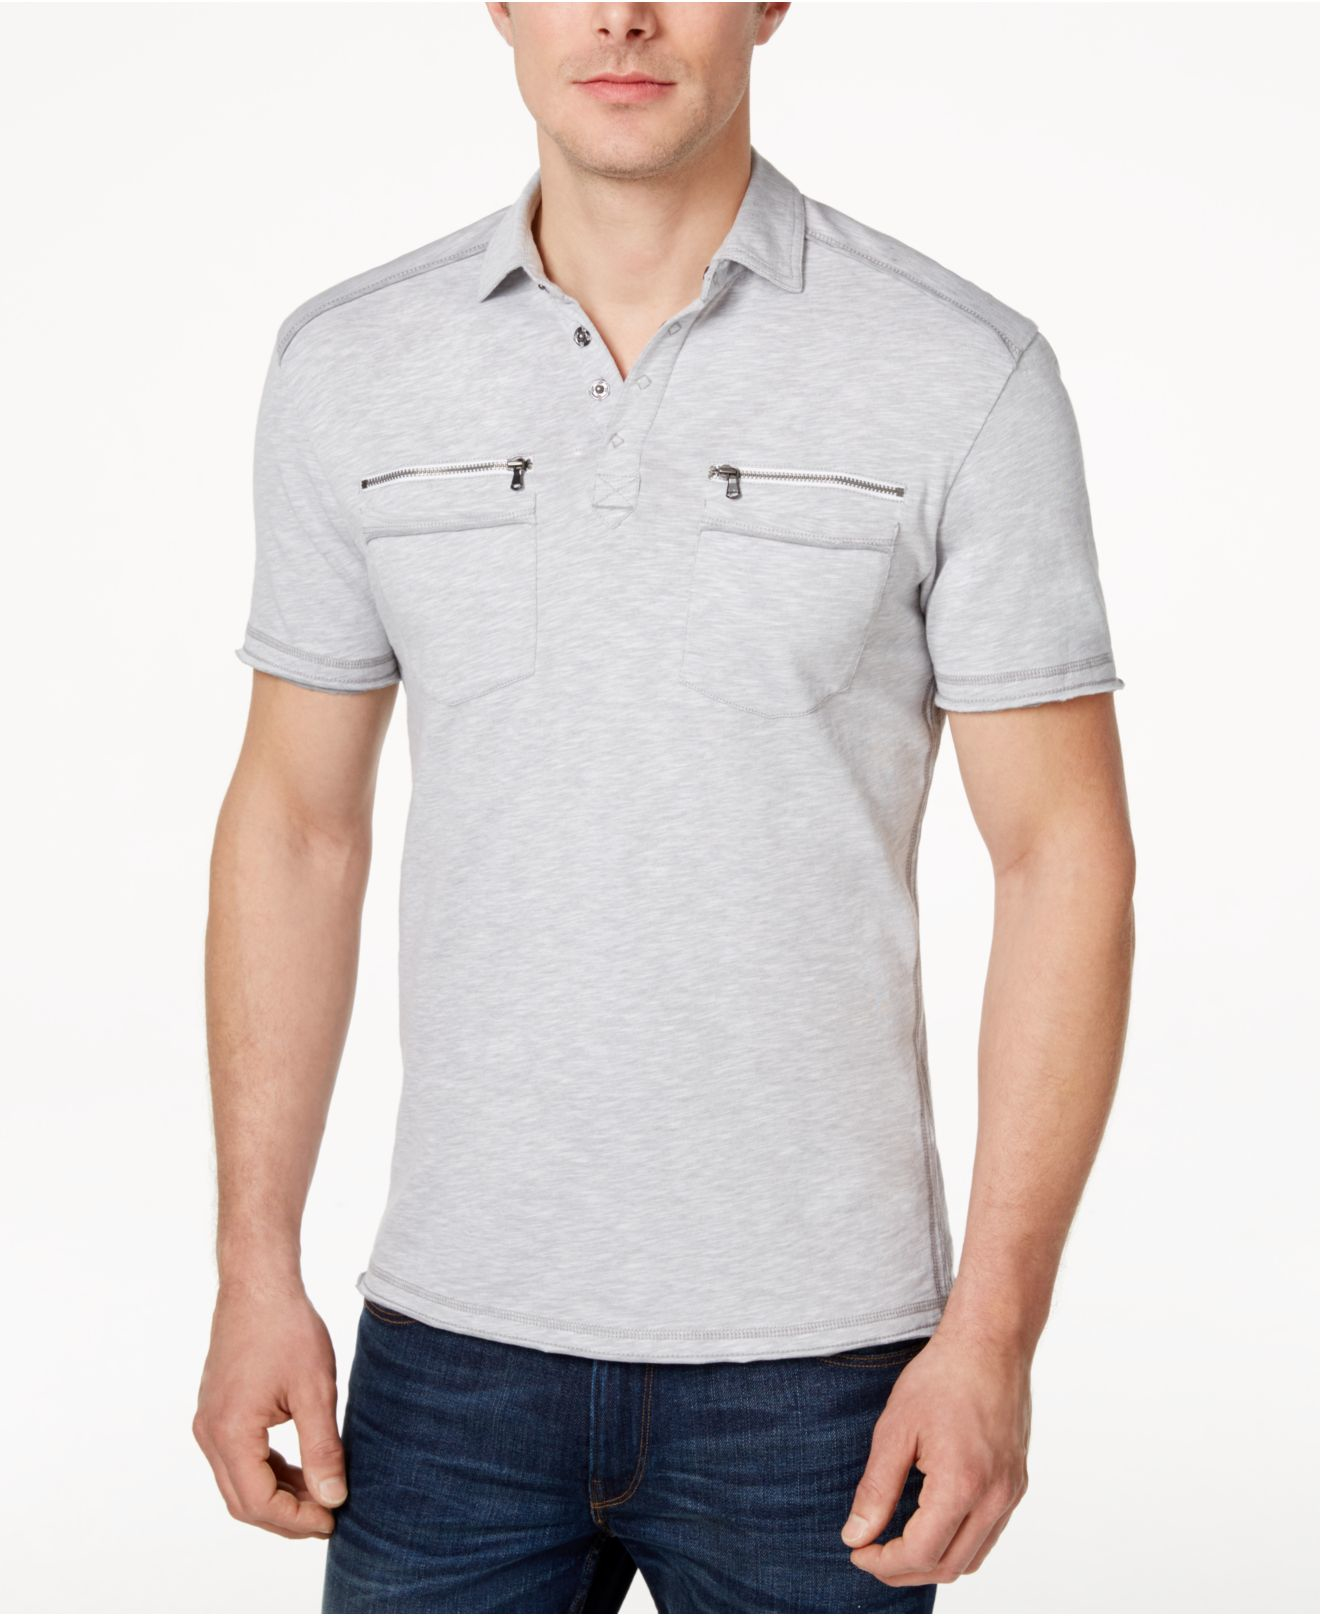 Mens polo shirts at macy 39 s lera sweater for Online shopping mens shirts